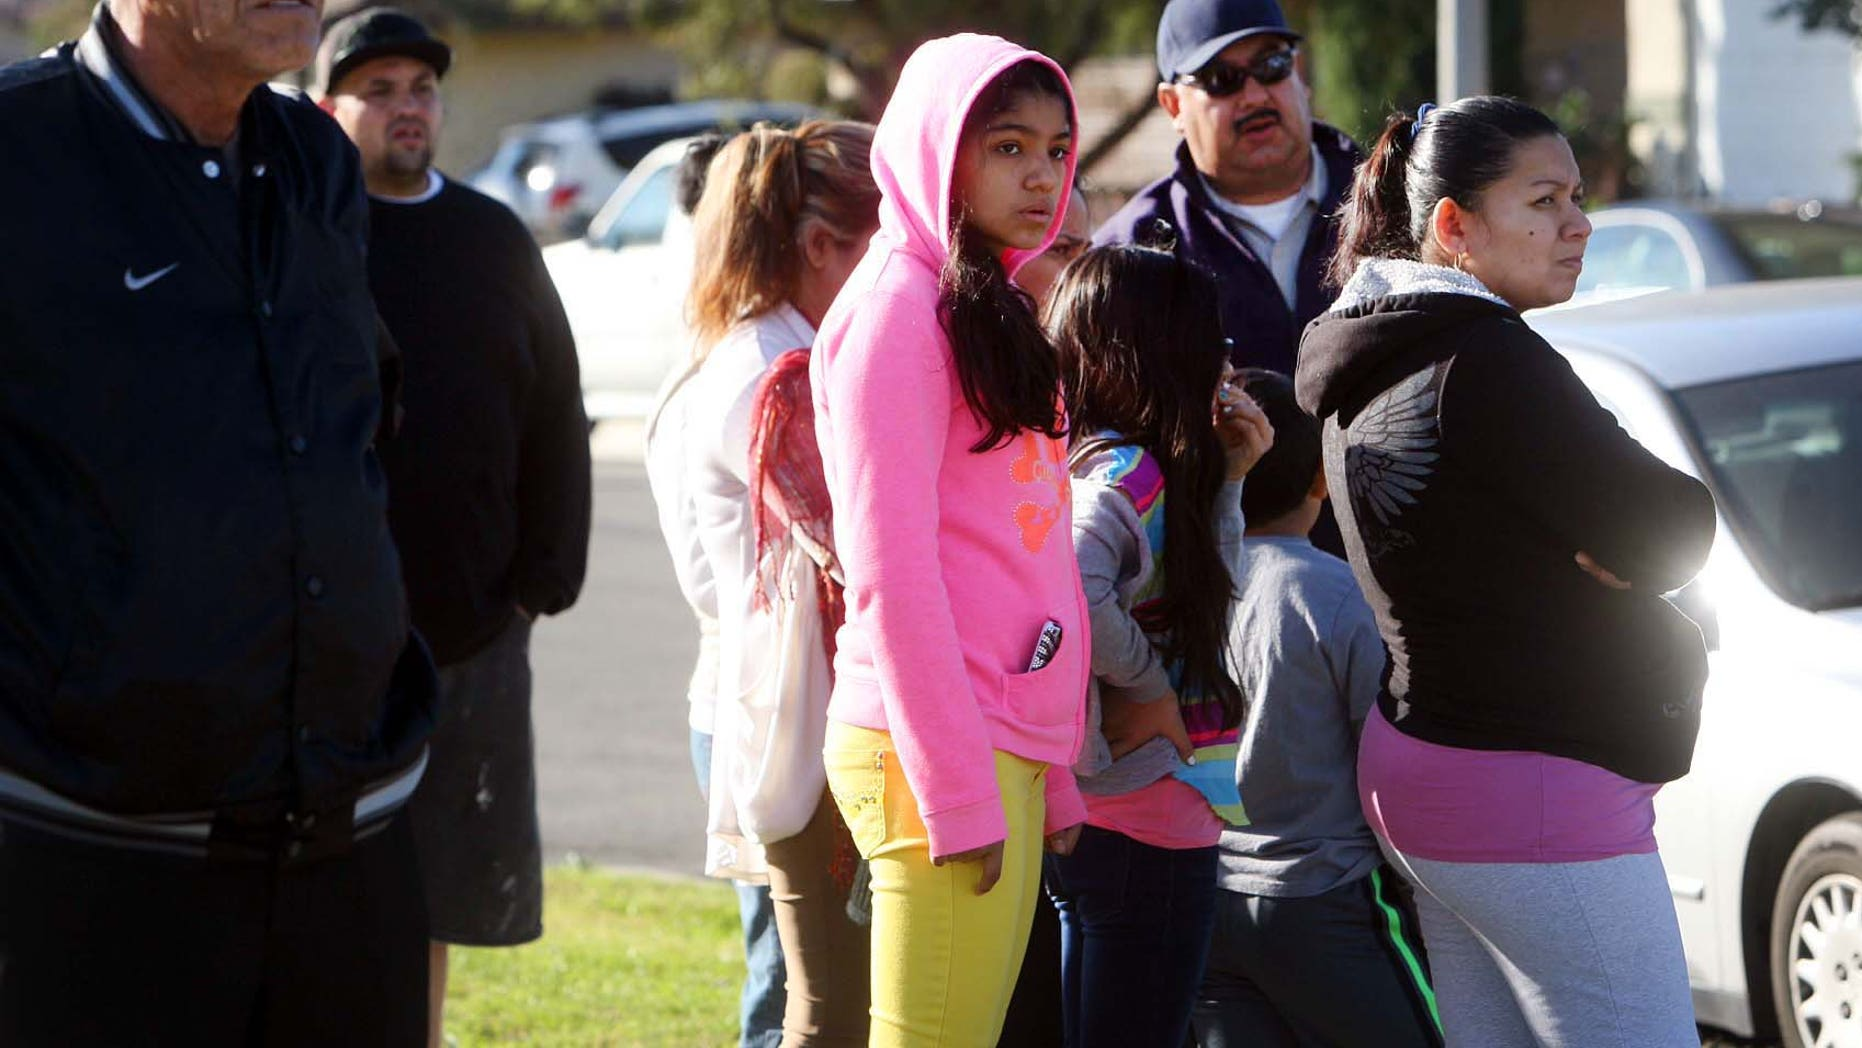 Neighbors look on as police investigate house where a family of four were found shot to death.